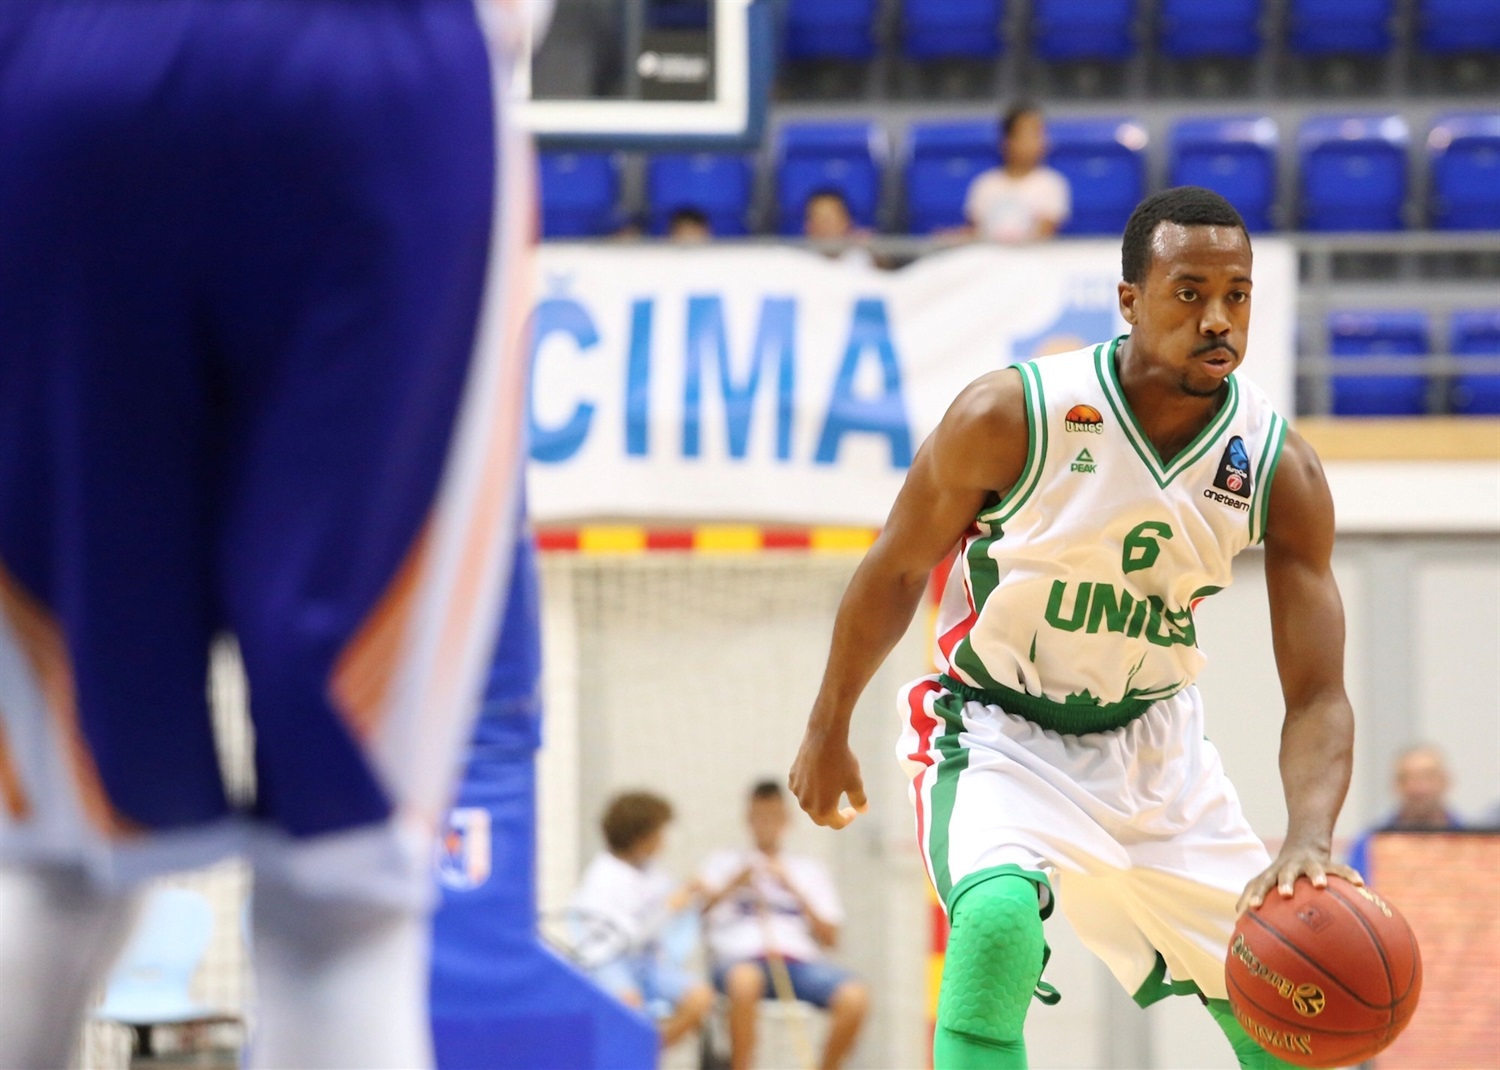 Errick McCollum - UNICS Kazan (photo Mornar Bar) - EC18